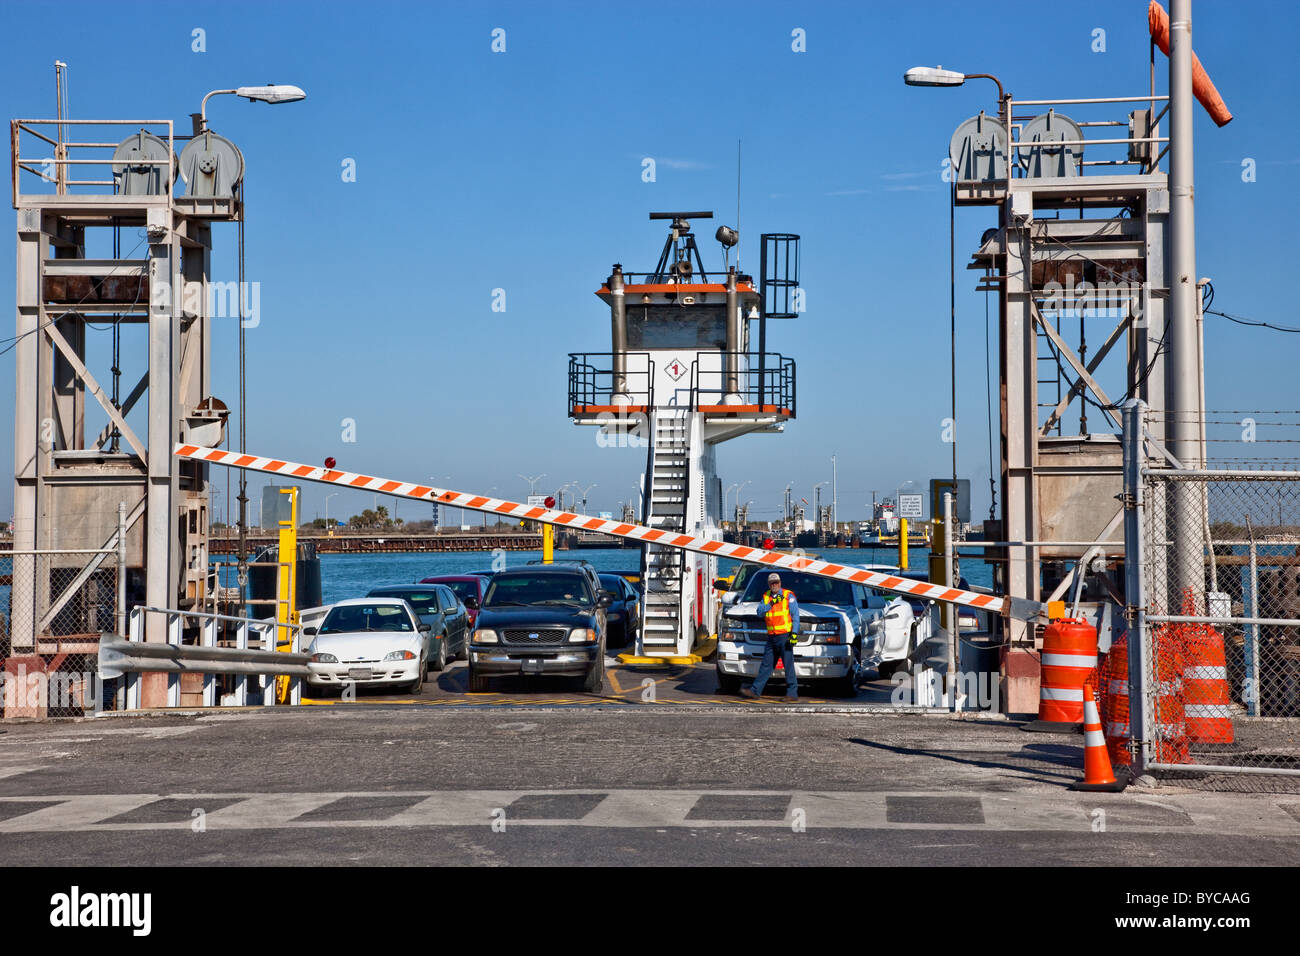 Ferry, vehicles preparing to exit. - Stock Image